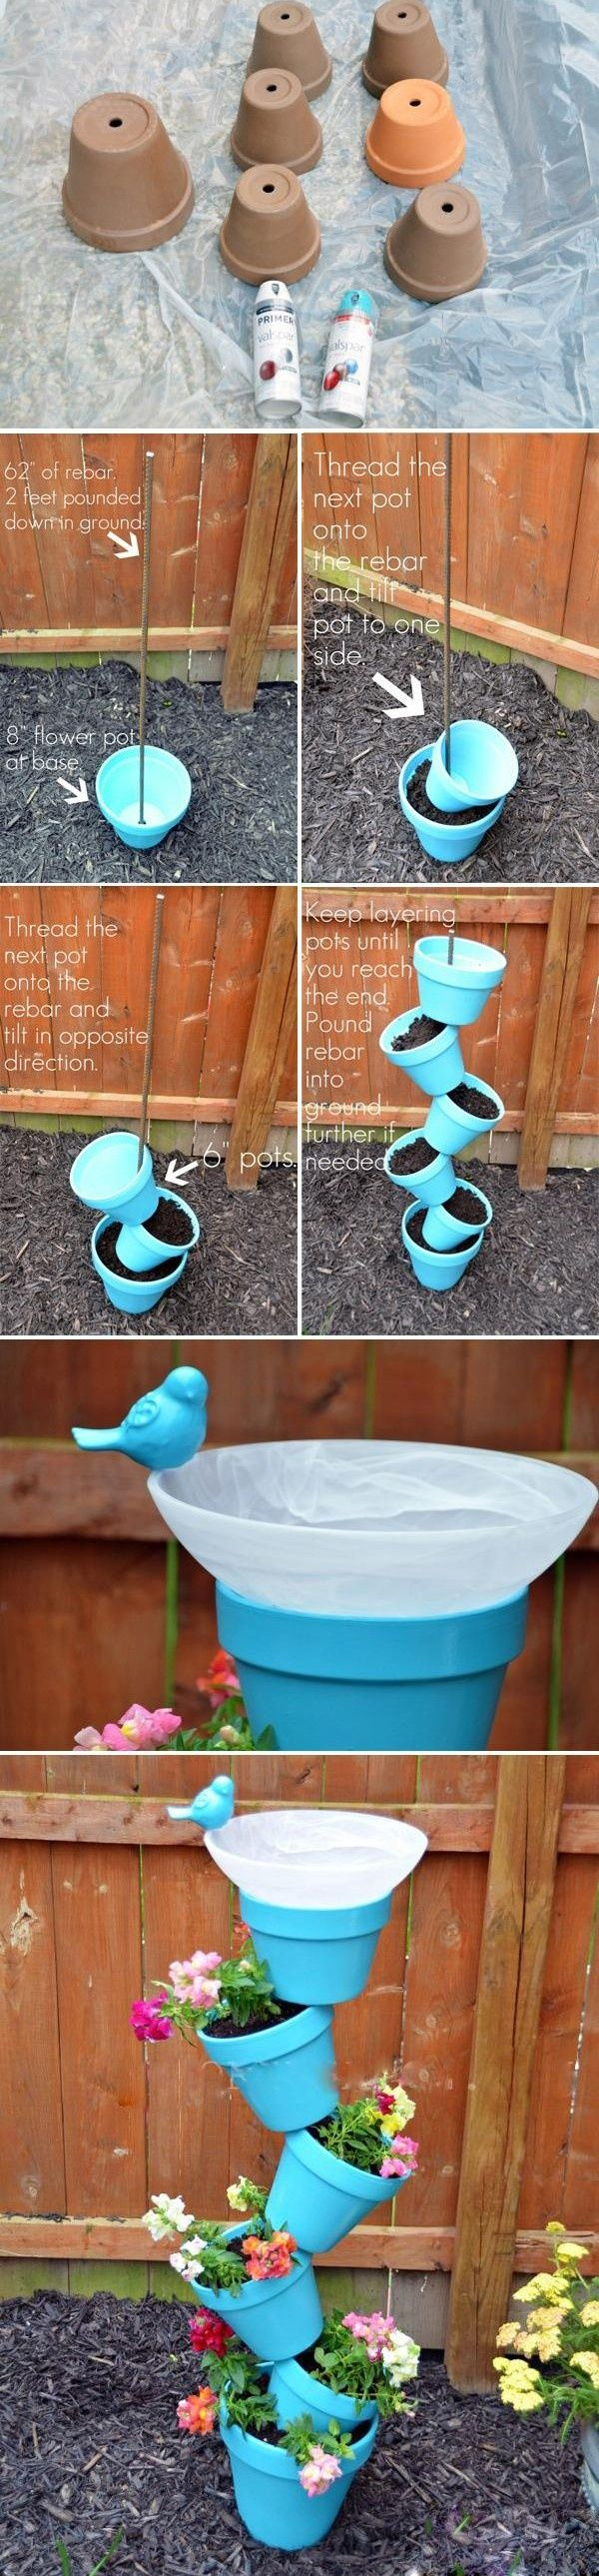 I'm going to try this. Garden Crafts for Kids, Gardening for Kids Projects, Idea, Cork, Plant, air plan